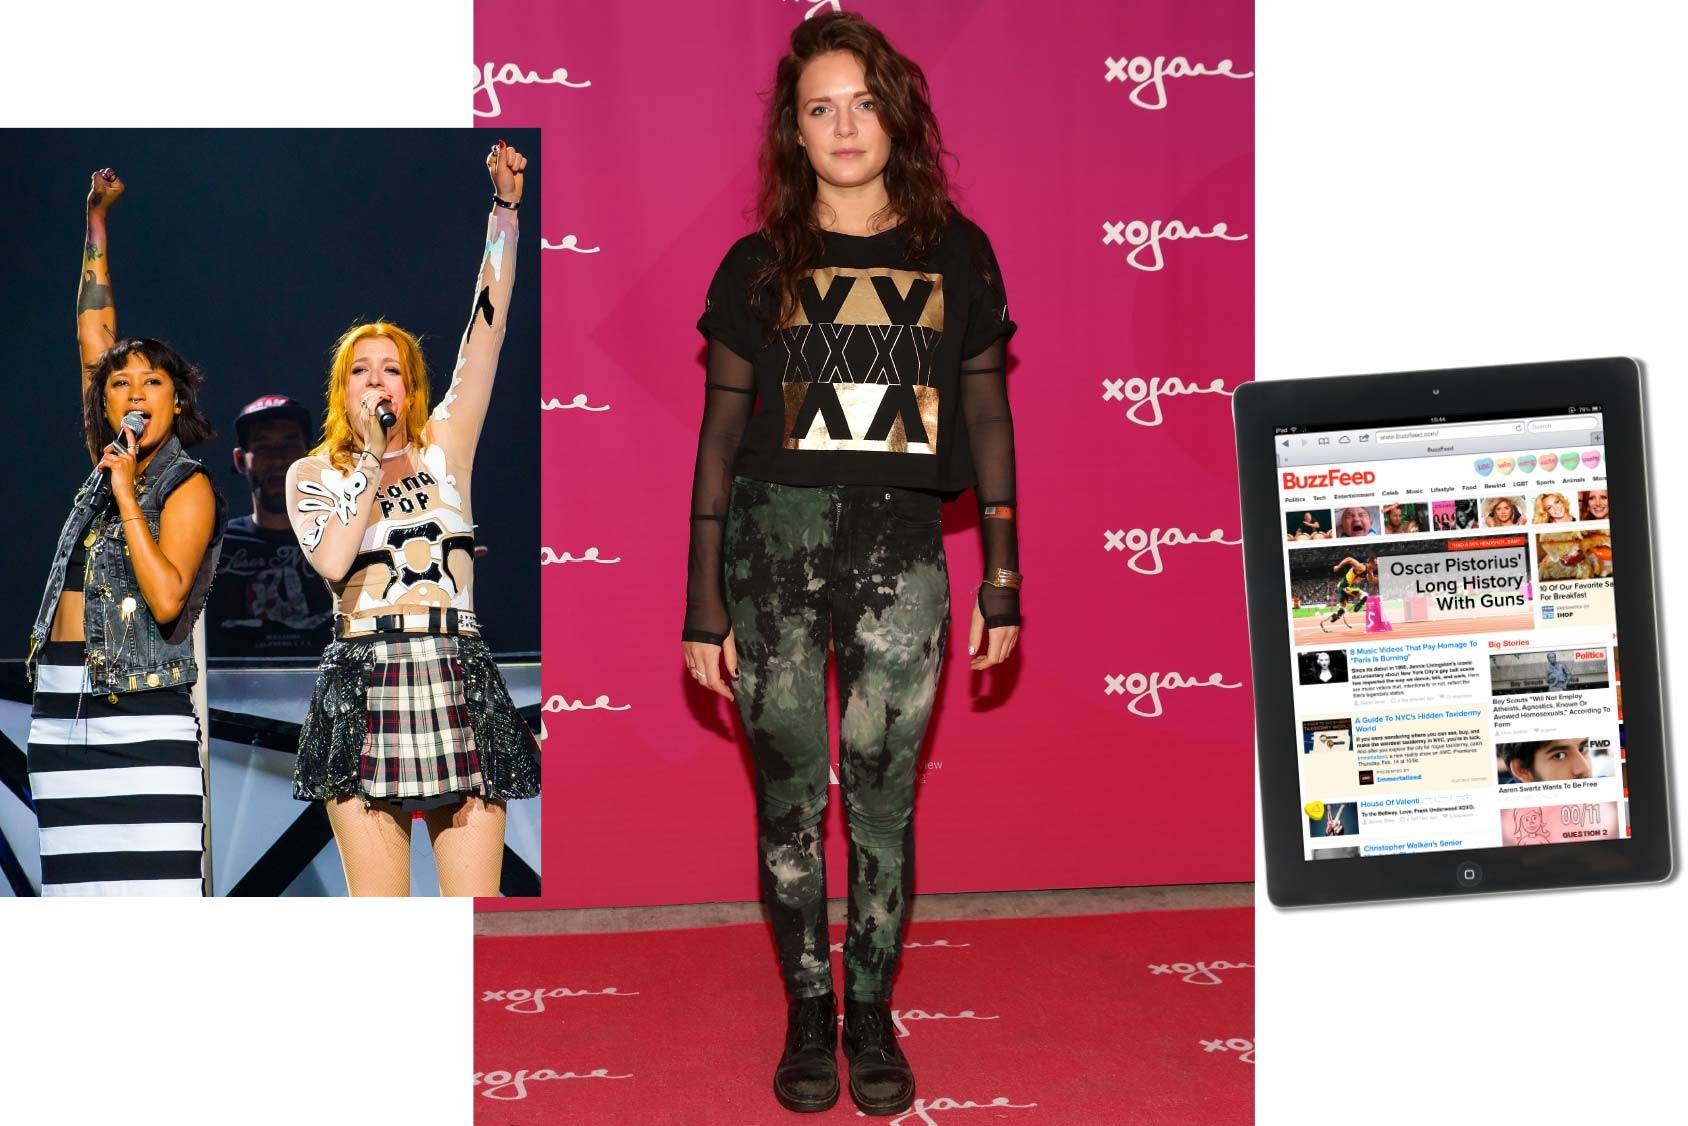 Tove Lo follows Swedish duo Icona Pop and Buzzfeed, All Over Press/Getty Images.